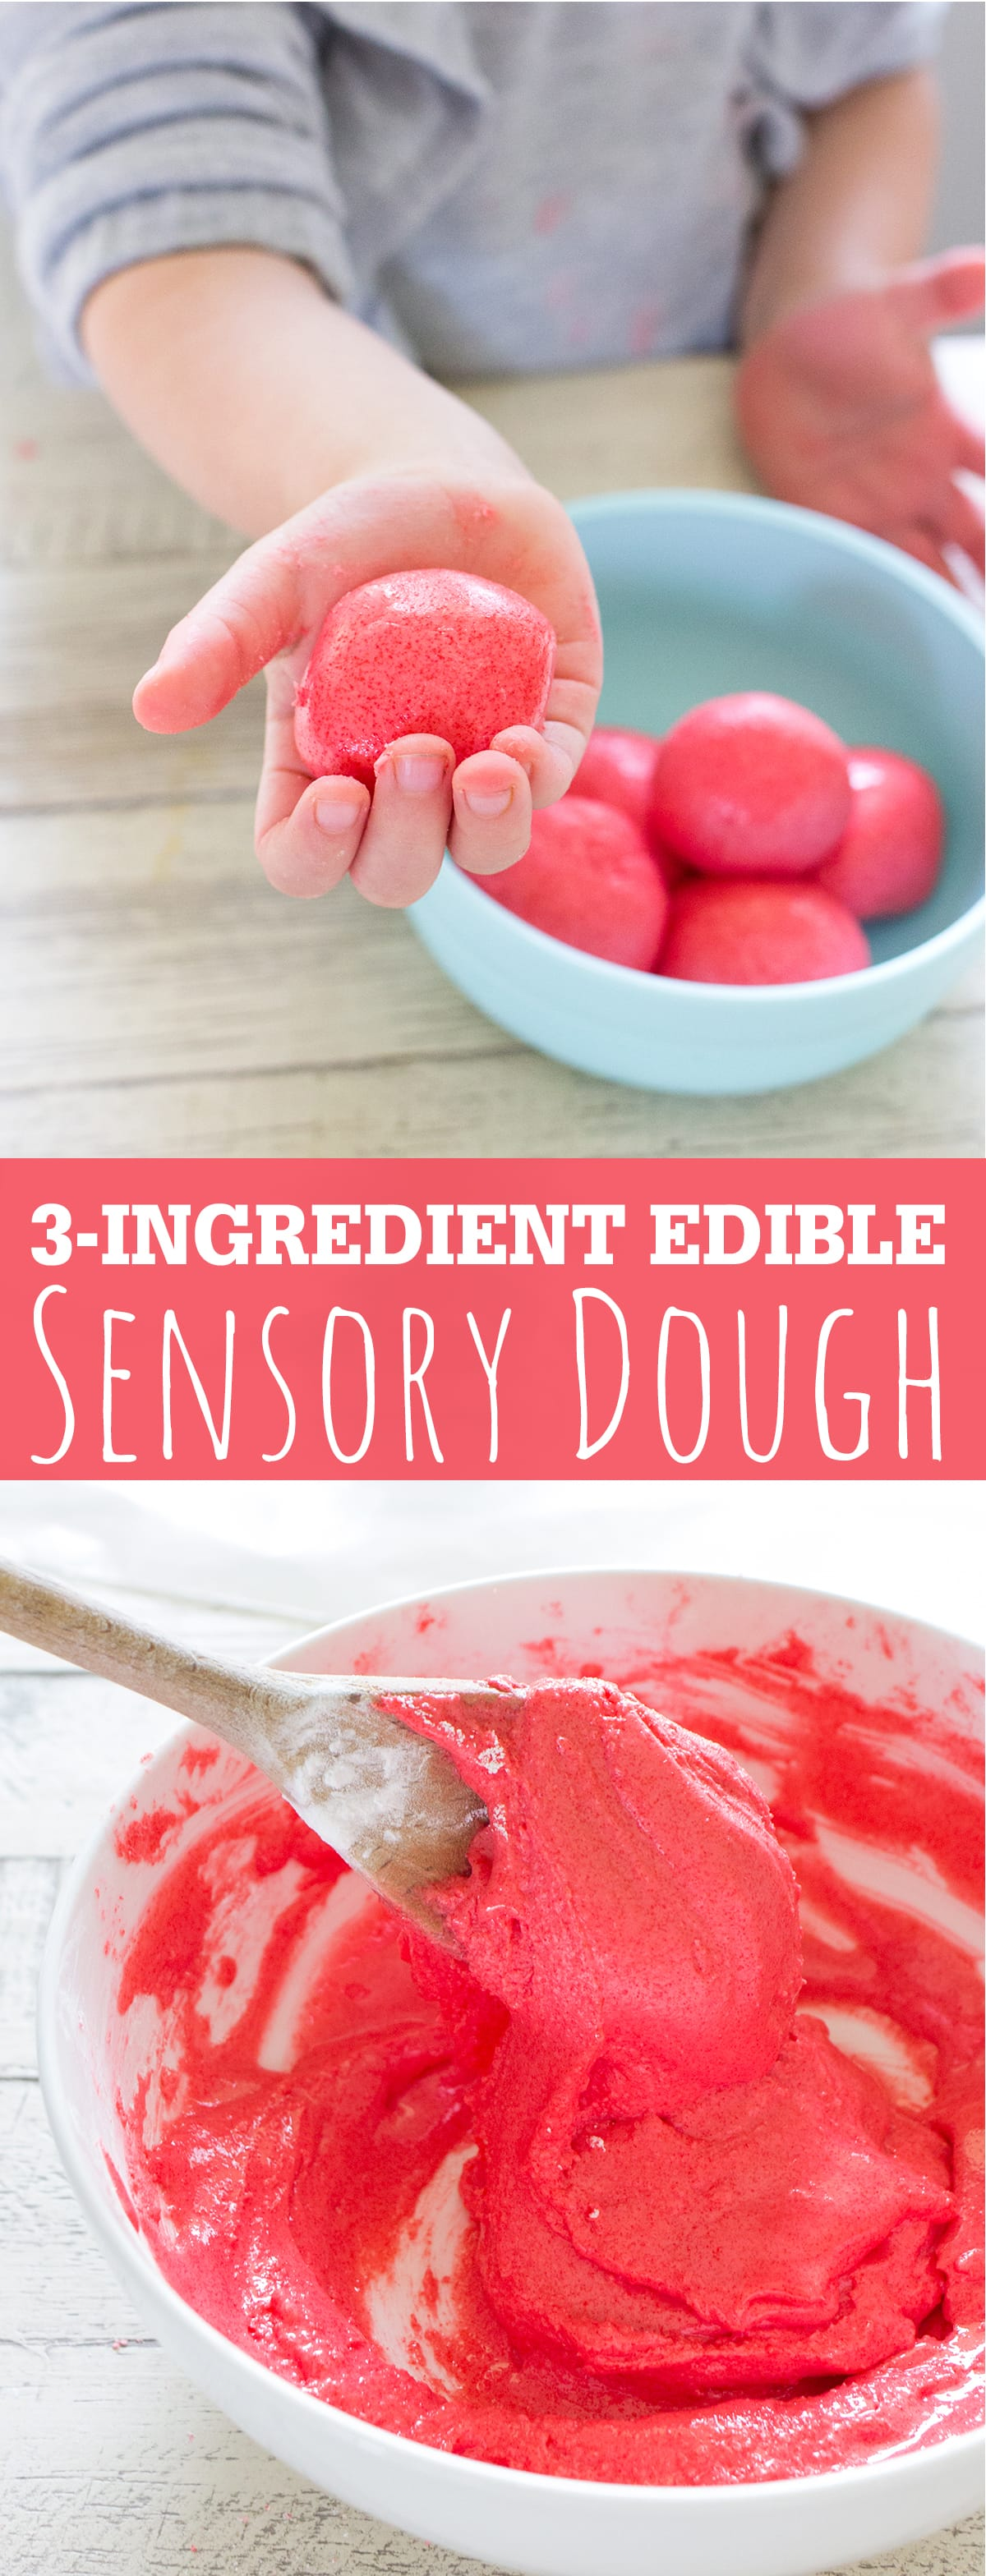 3 Ingredient Edible Sensory Dough